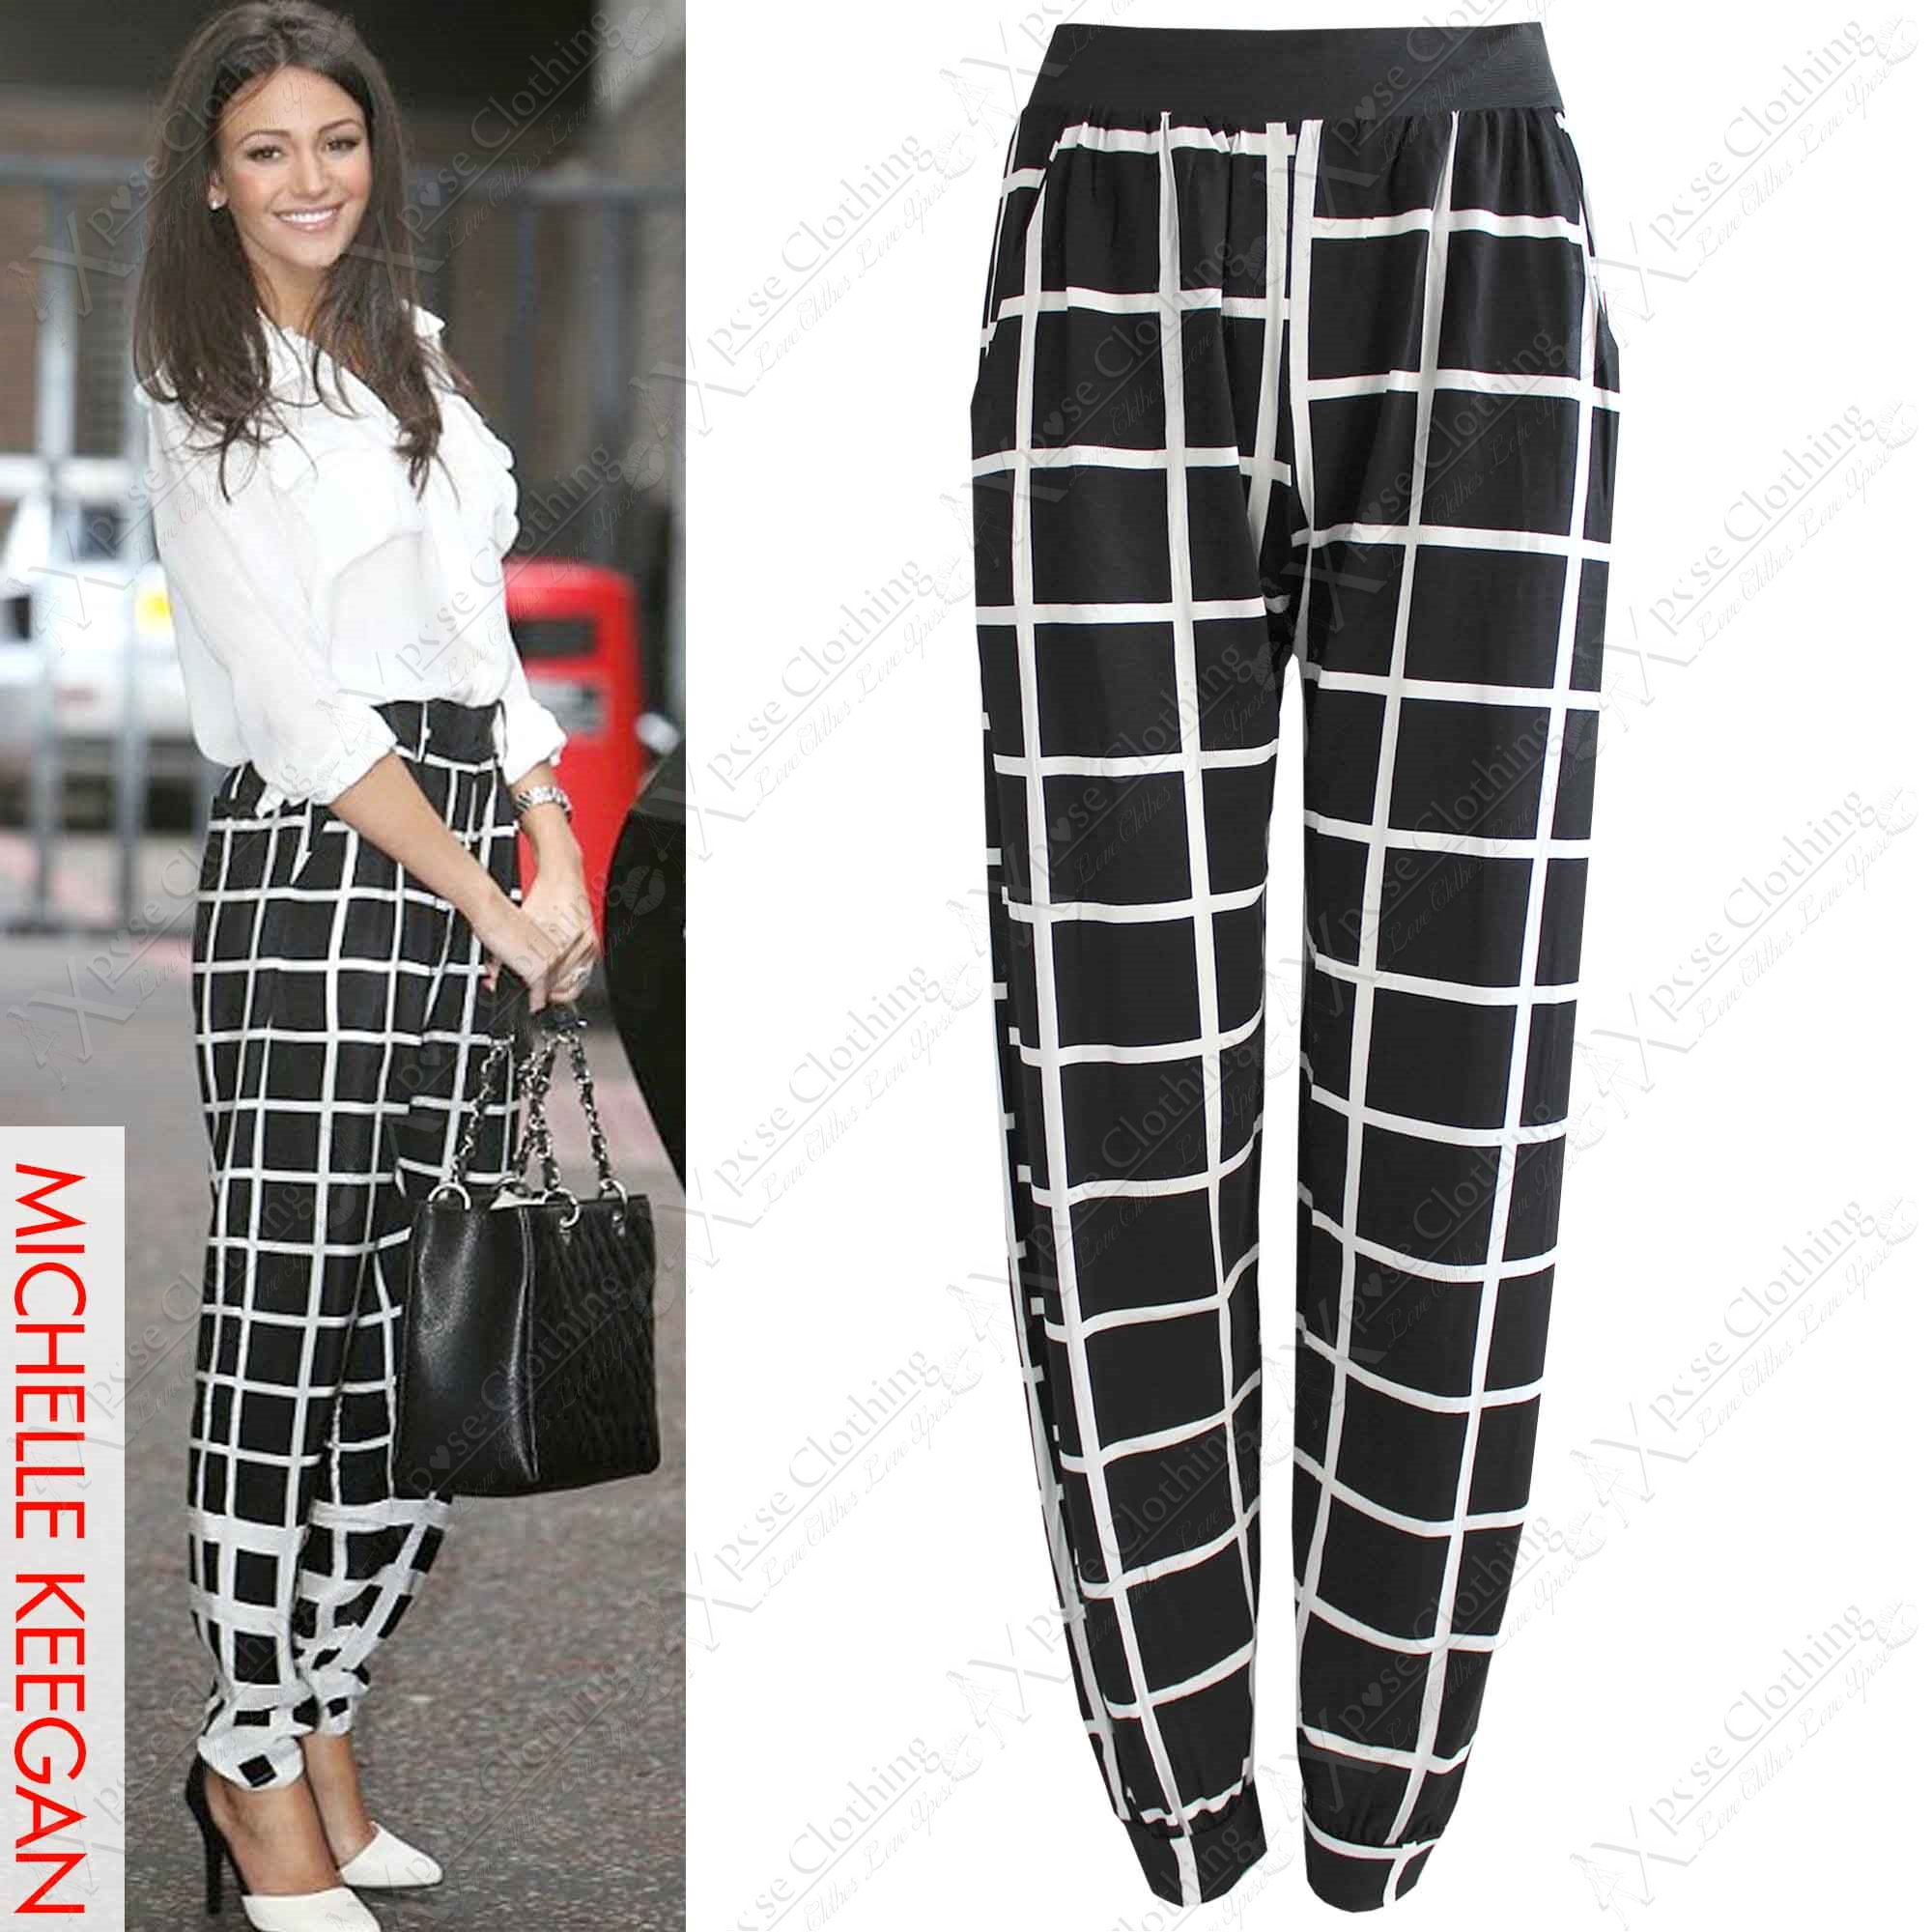 NEW WOMEN BLACK CHECK PRINT TROUSERS LADIES STRETCH FIT HARIM LOOK ...